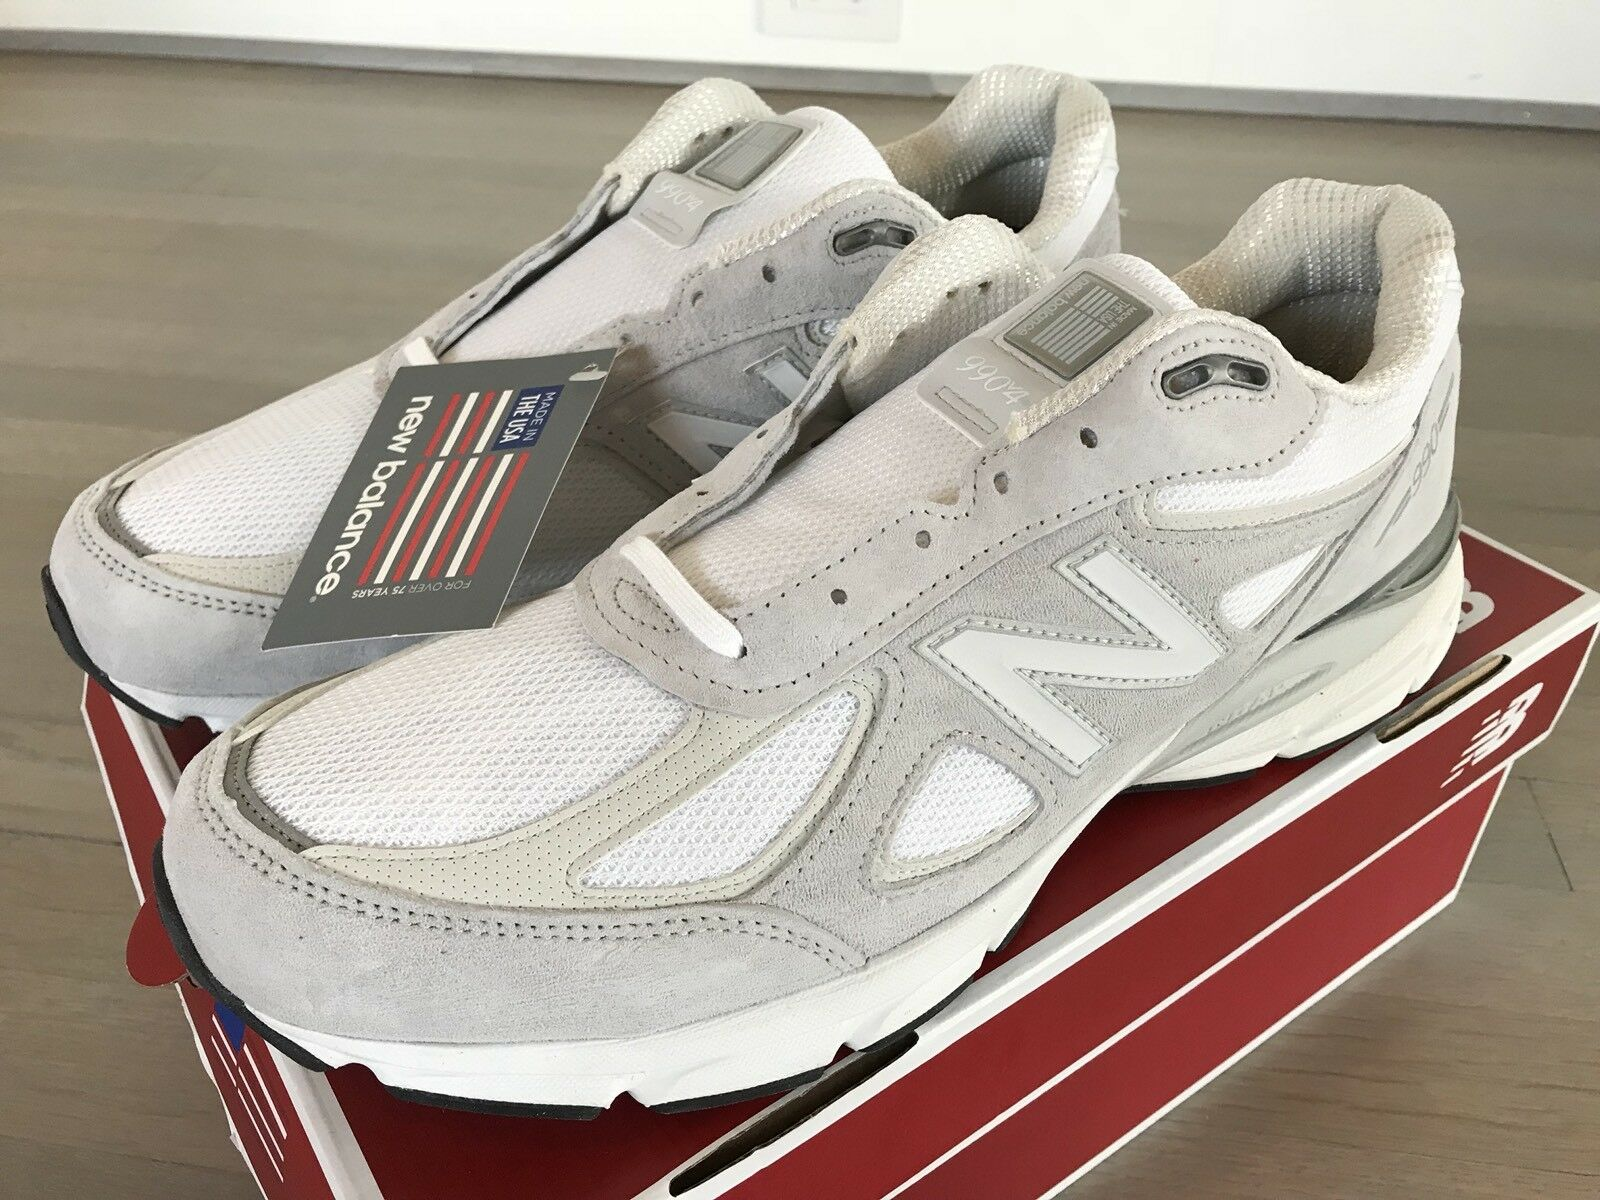 New Balance 990 White Suede and  Nylon shoes Size US 14, Made in USA